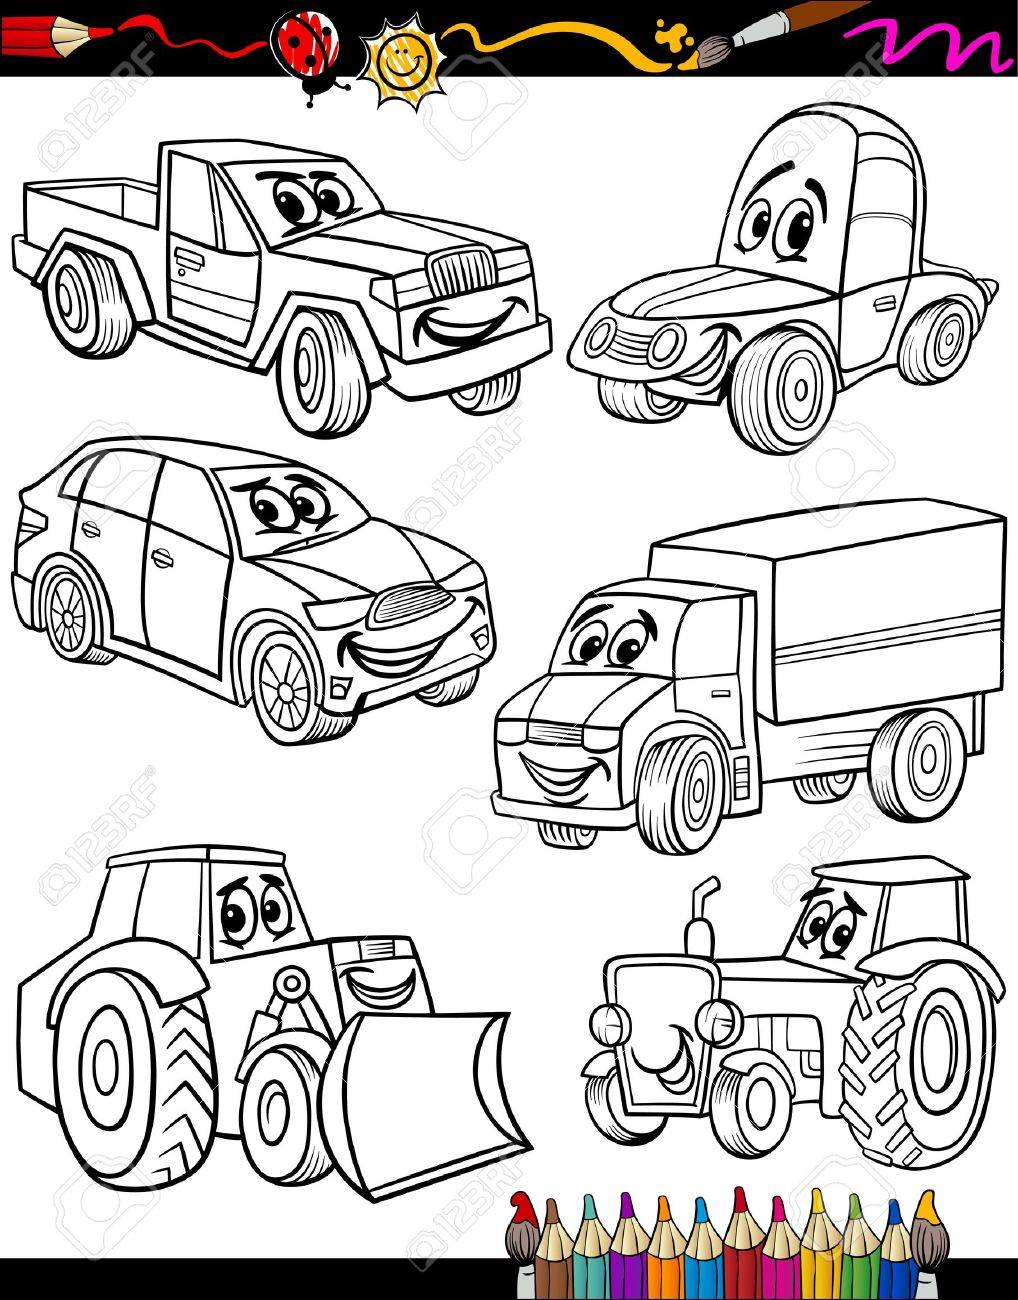 Coloring pictures of cars truck tractors - Coloring Book Or Page Cartoon Illustration Of Black And White Cars Or Trucks Vehicles And Machines